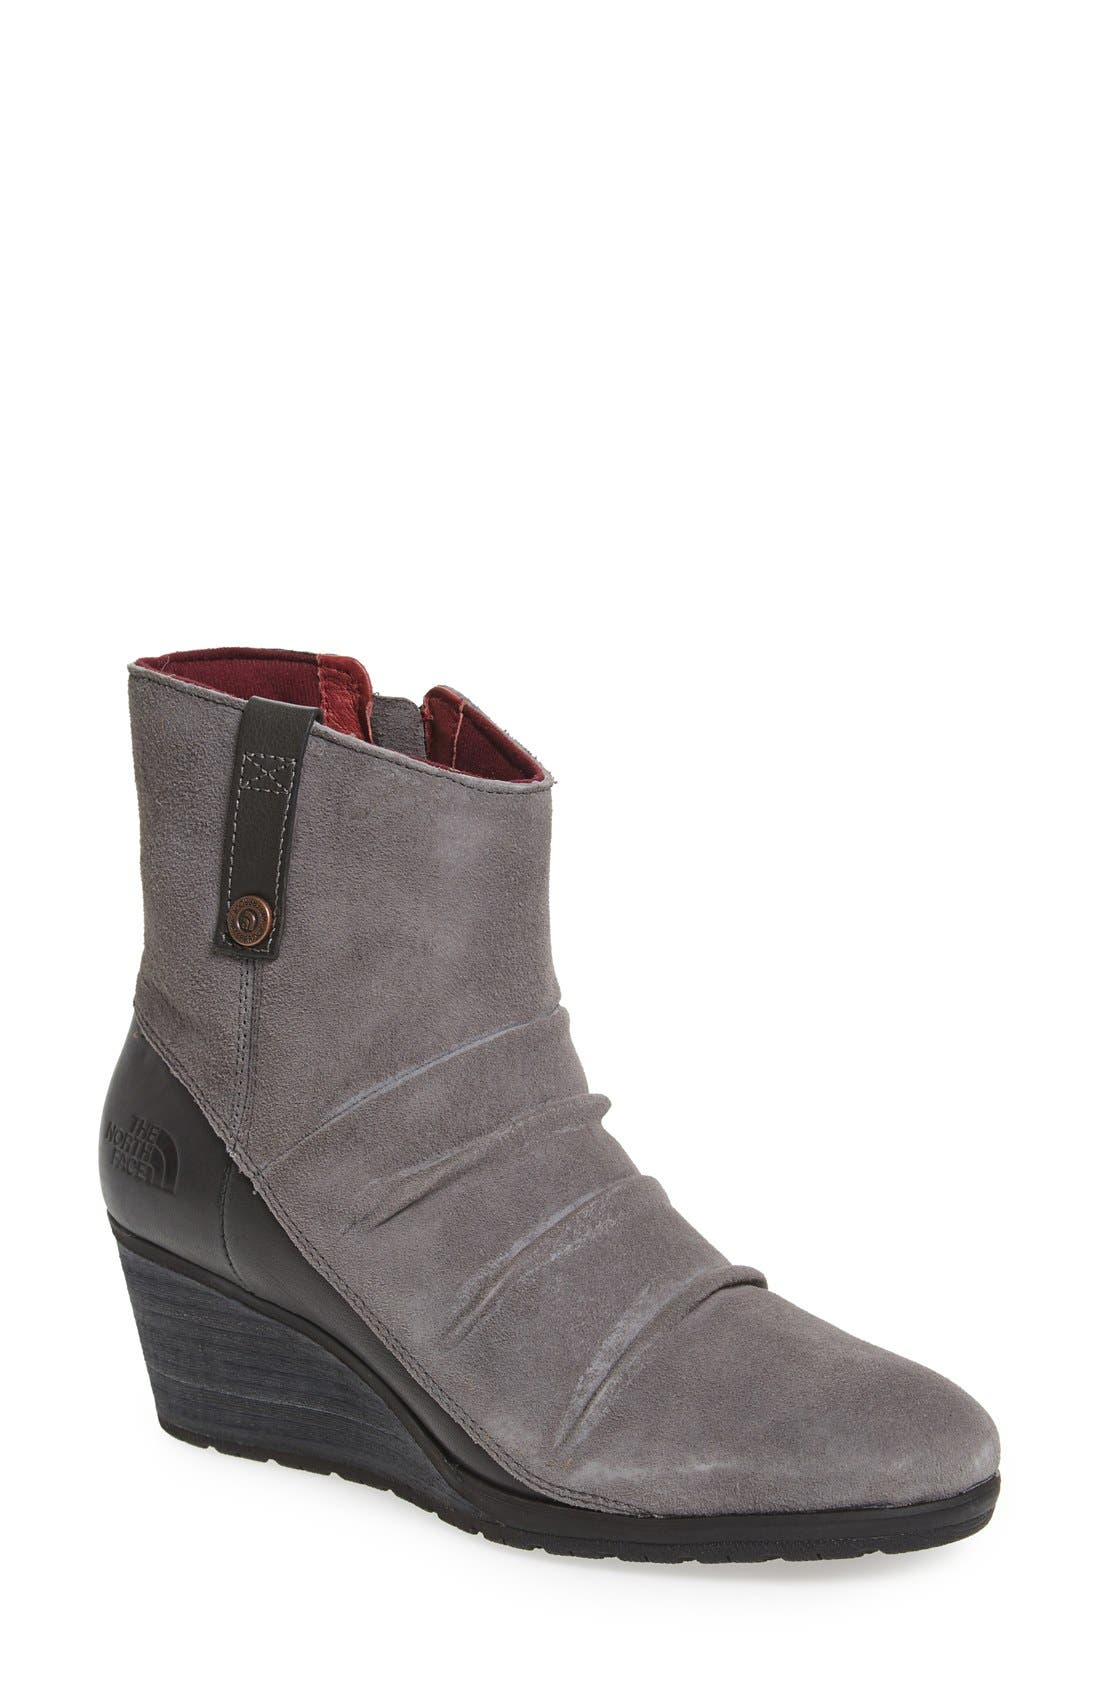 THE NORTH FACE,                             'Bridgeton' Waterproof Wedge Bootie,                             Main thumbnail 1, color,                             030